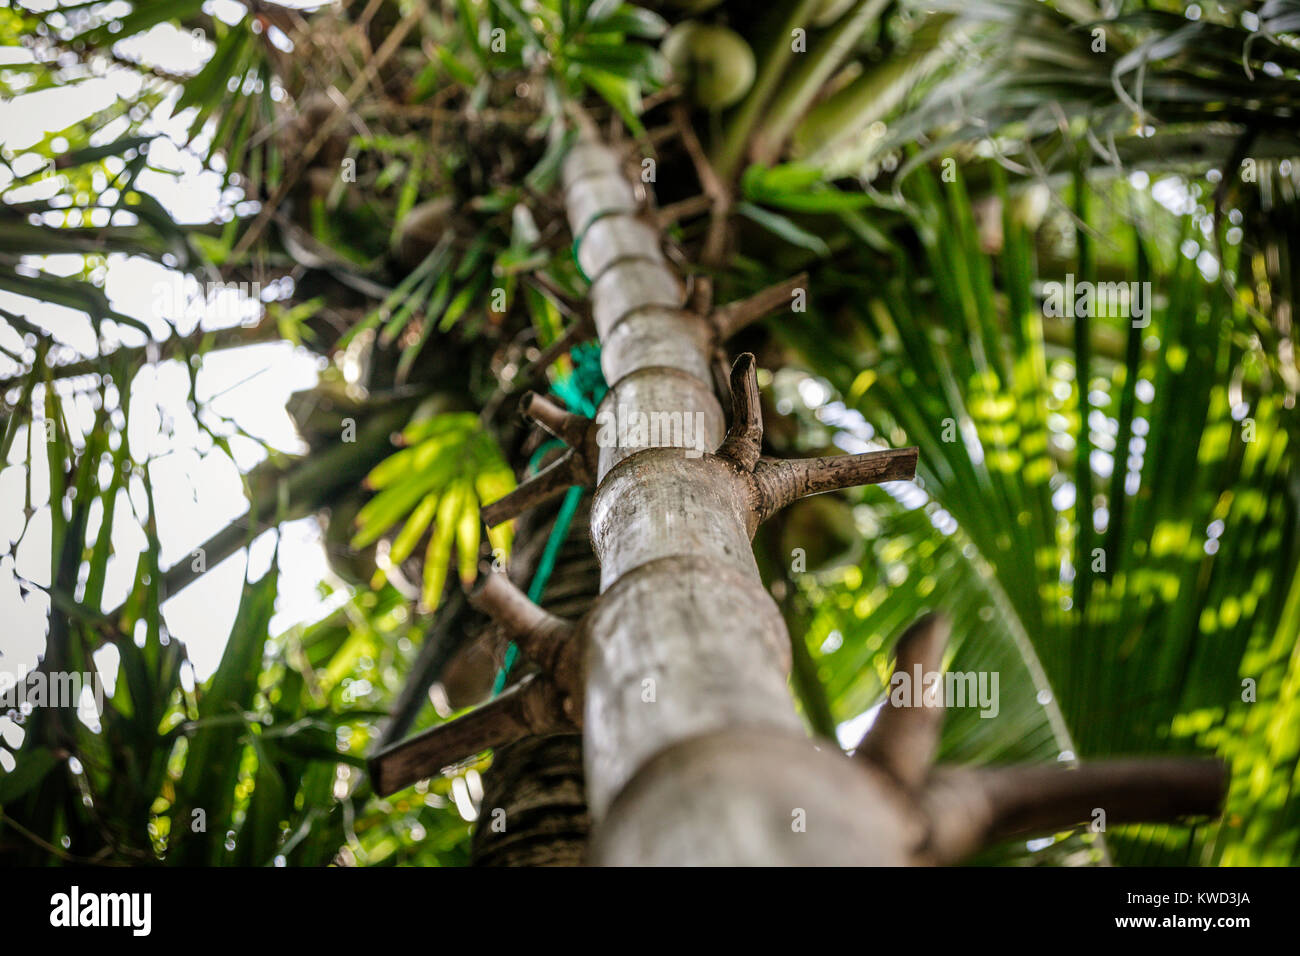 Bamboo Ladder Stock Photos & Bamboo Ladder Stock Images - Alamy